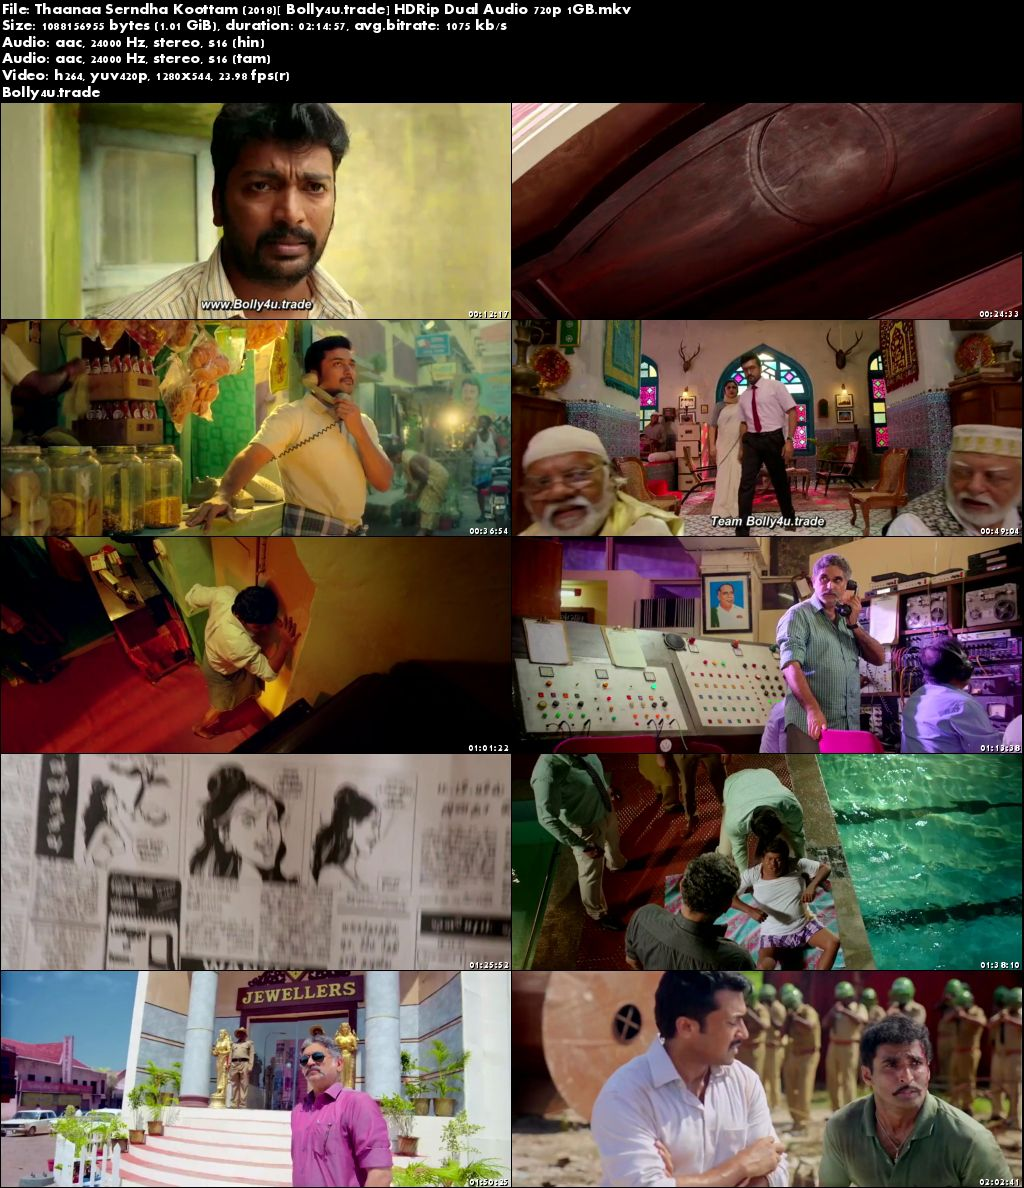 Thaanaa Serndha Koottam 2018 HDRip 400MB Hindi Dual Audio 480p Download